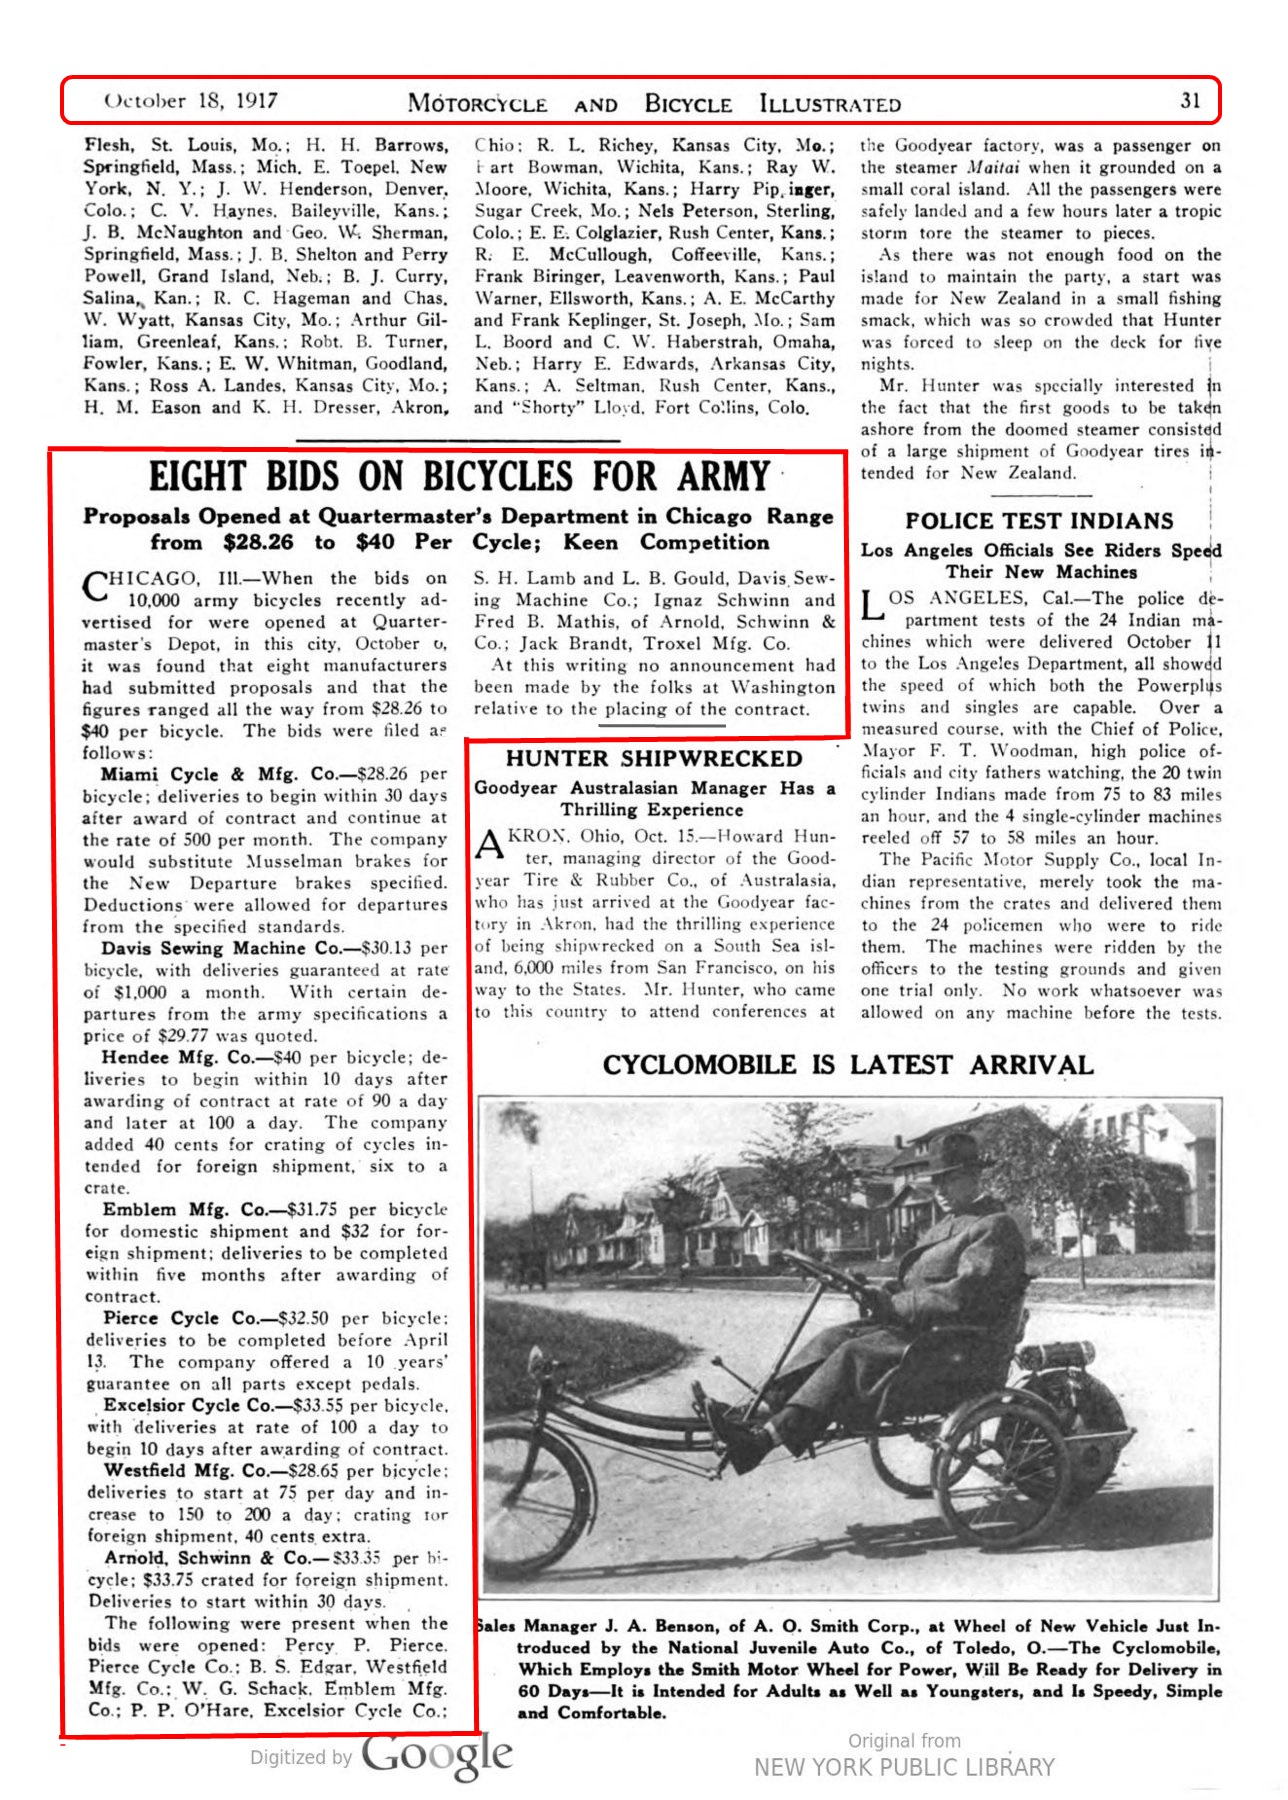 1918 military bicycles  chitown.jpg